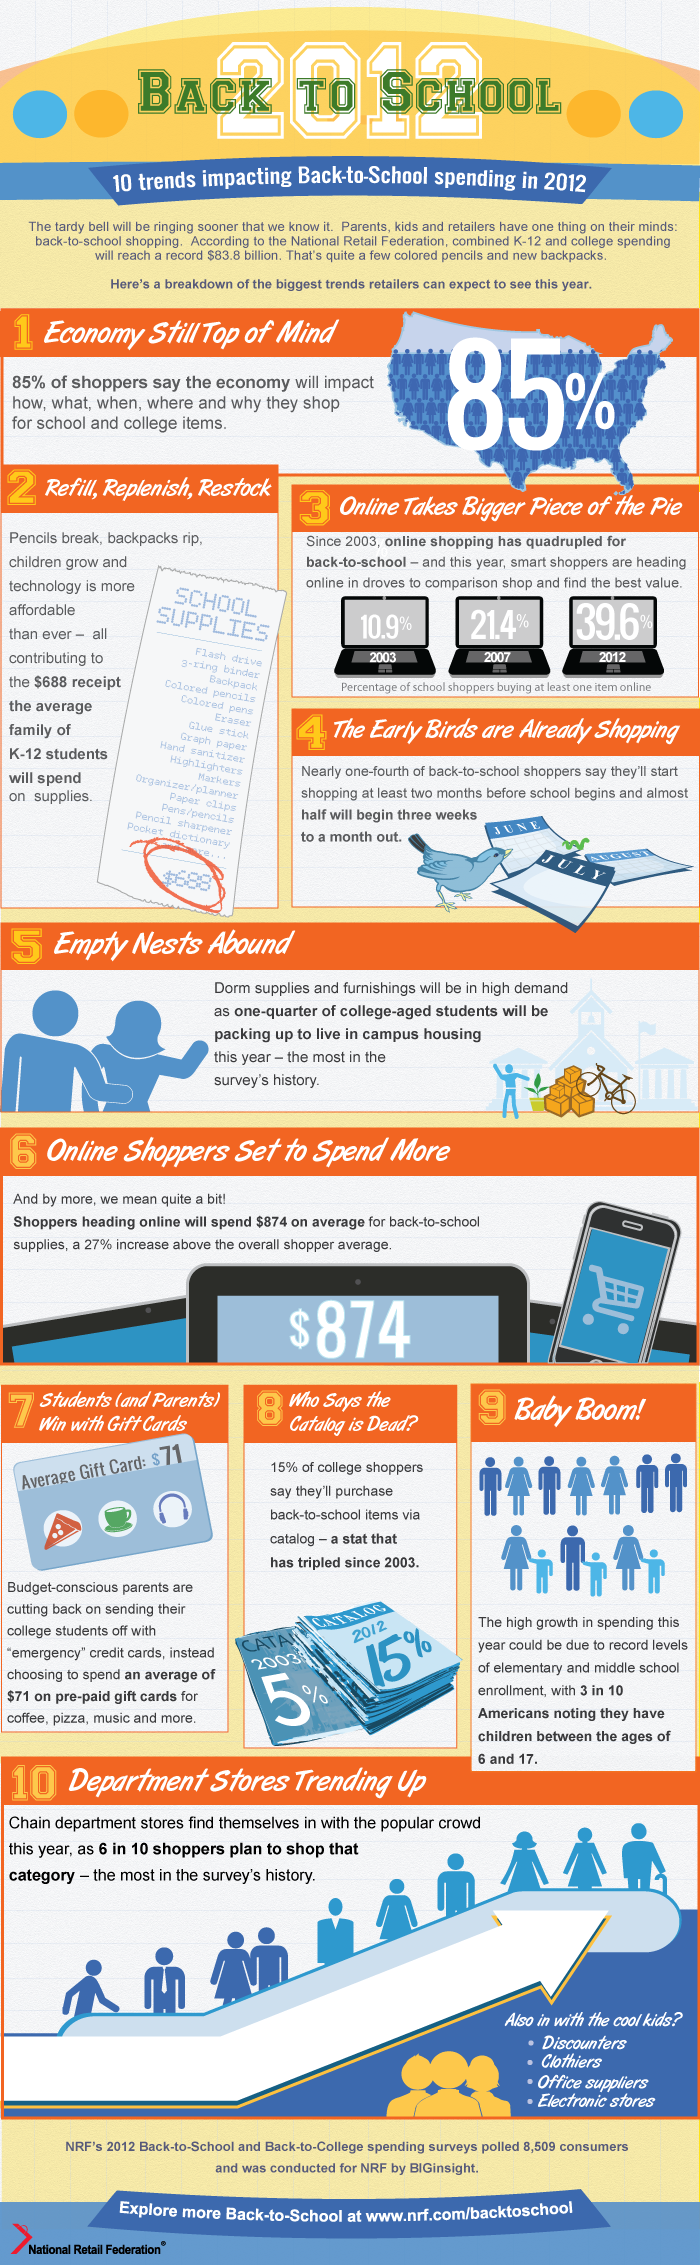 NRF Back to School Shopping Trends 2012 – Infographic